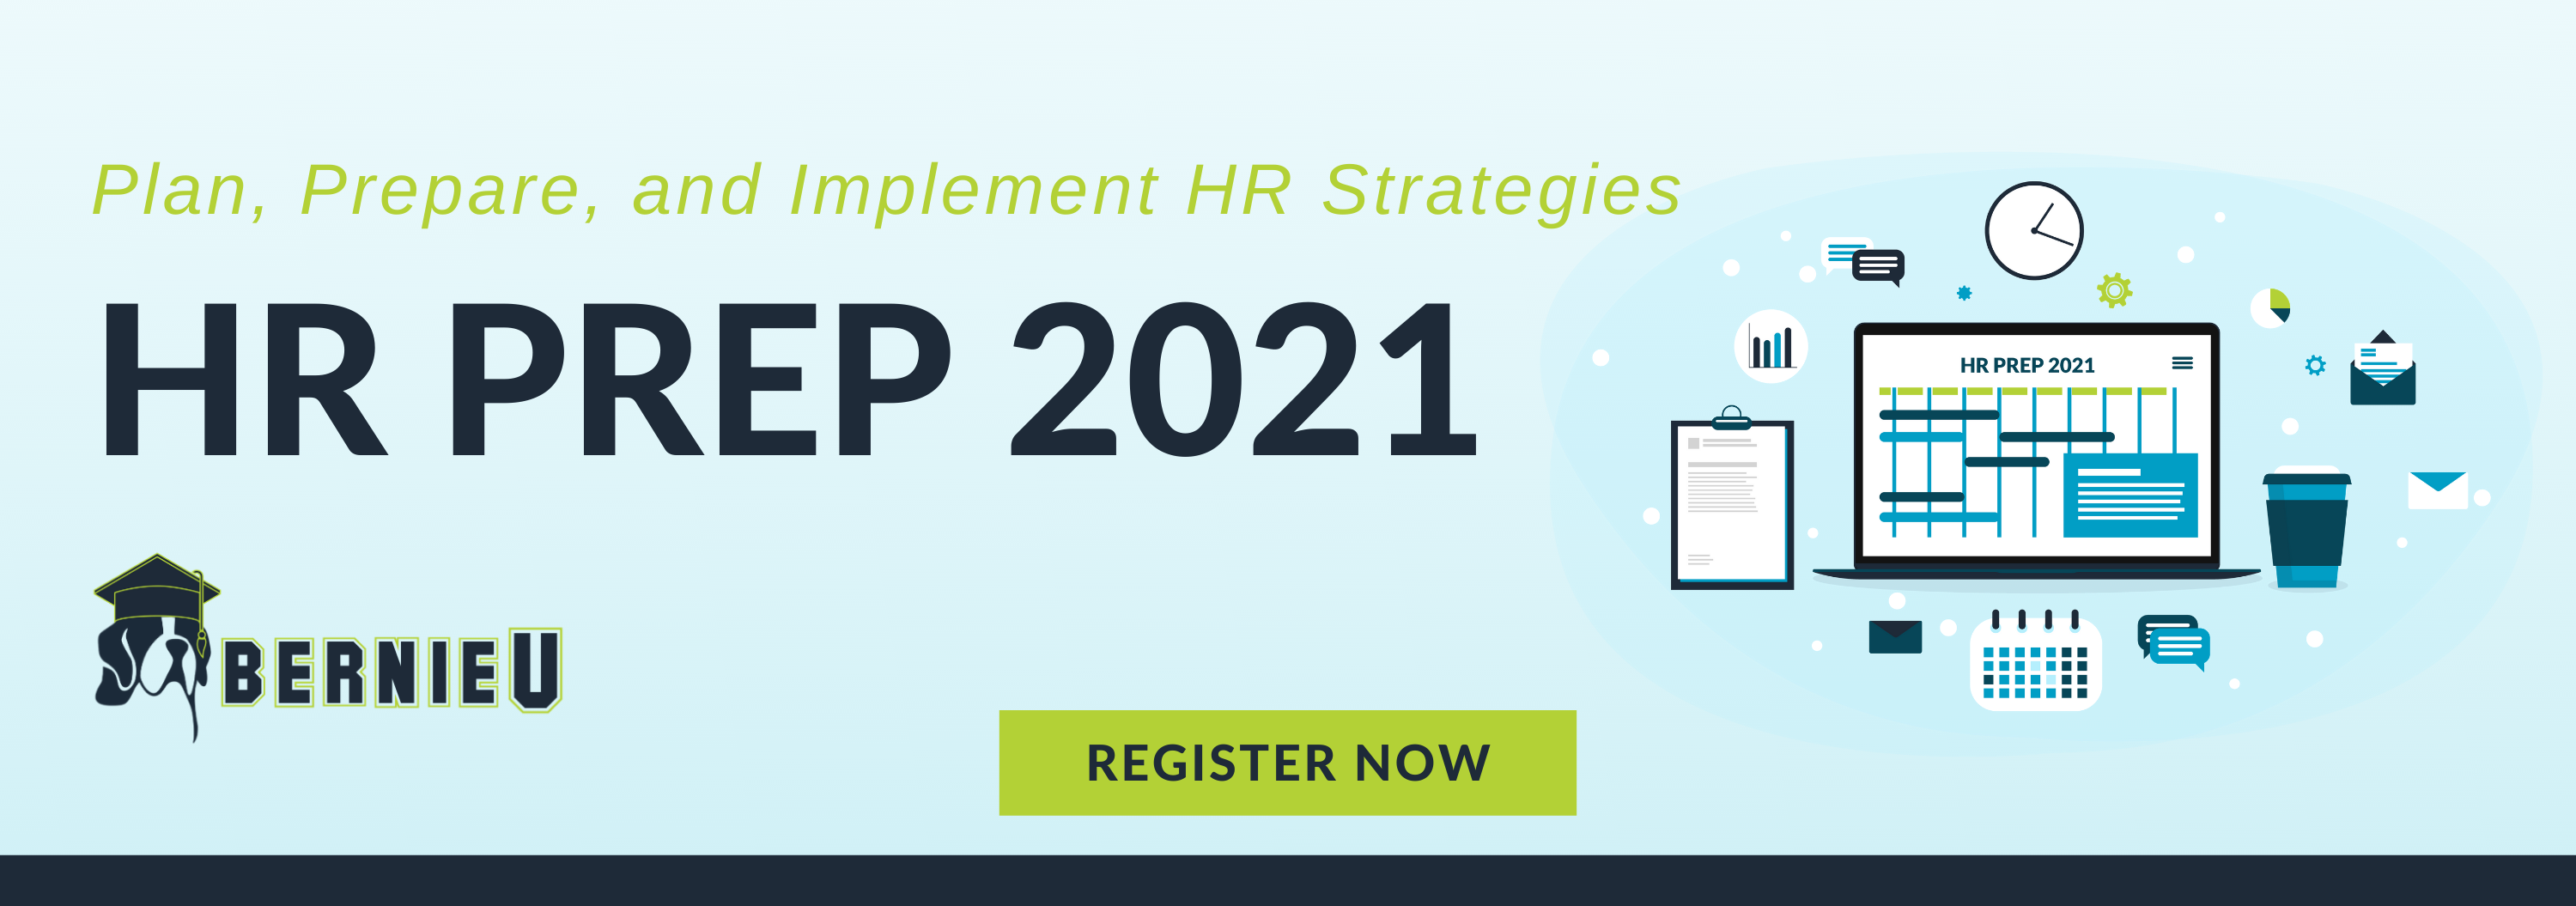 HR Prep 2021 BernieU Call to Action